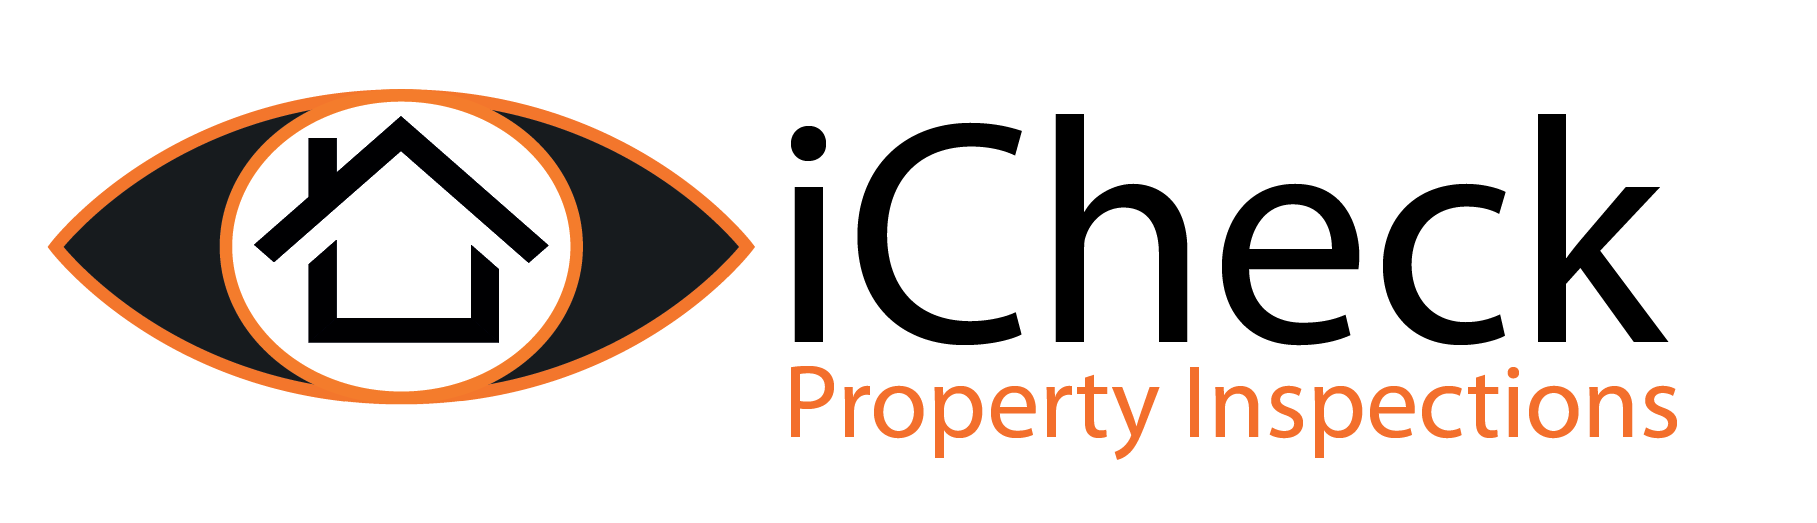 iCheck Property Inspections Logo